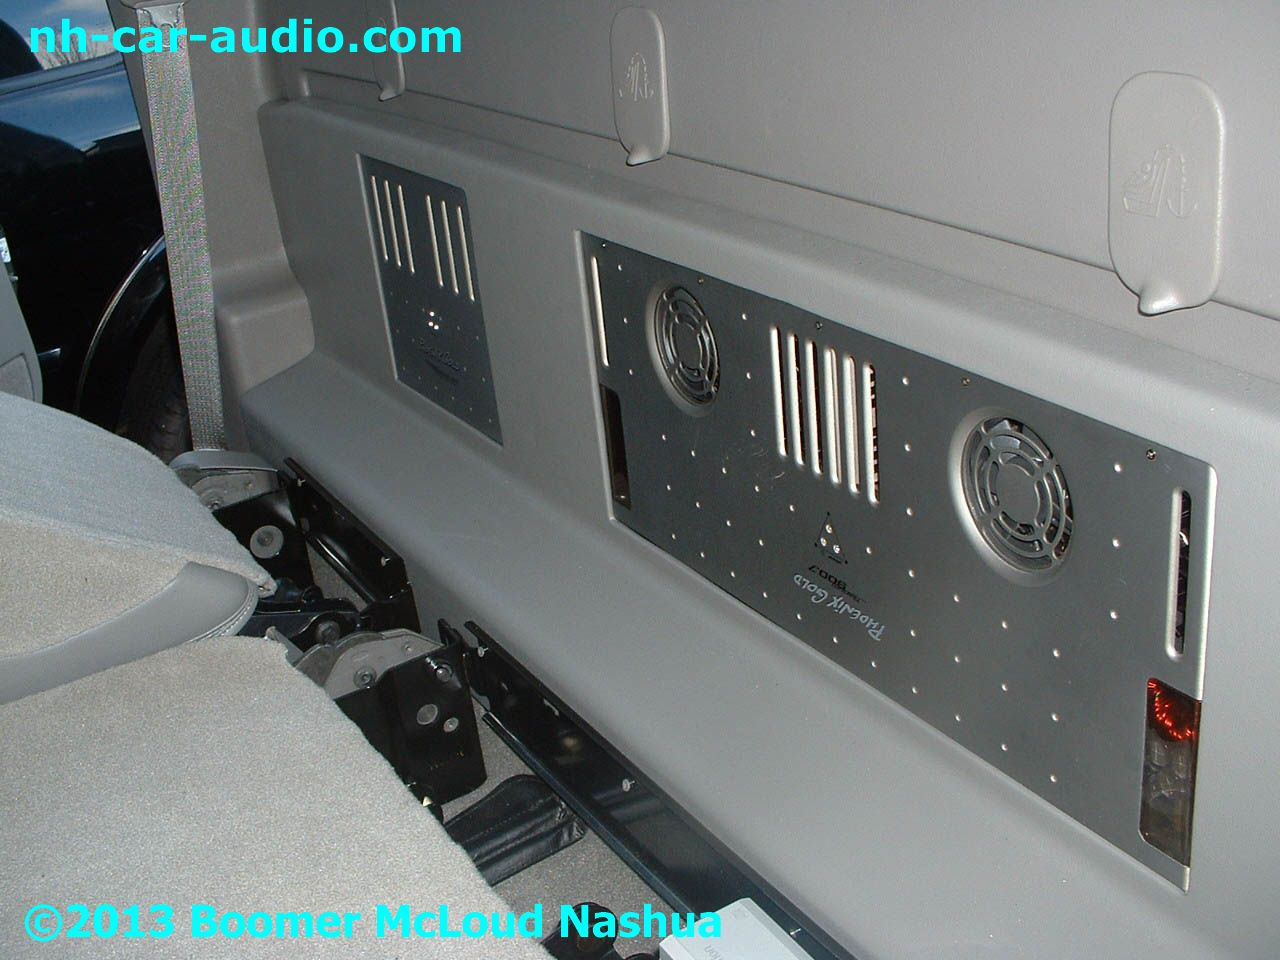 Chevy Silverado custom amplifier rack Boomer Nashua